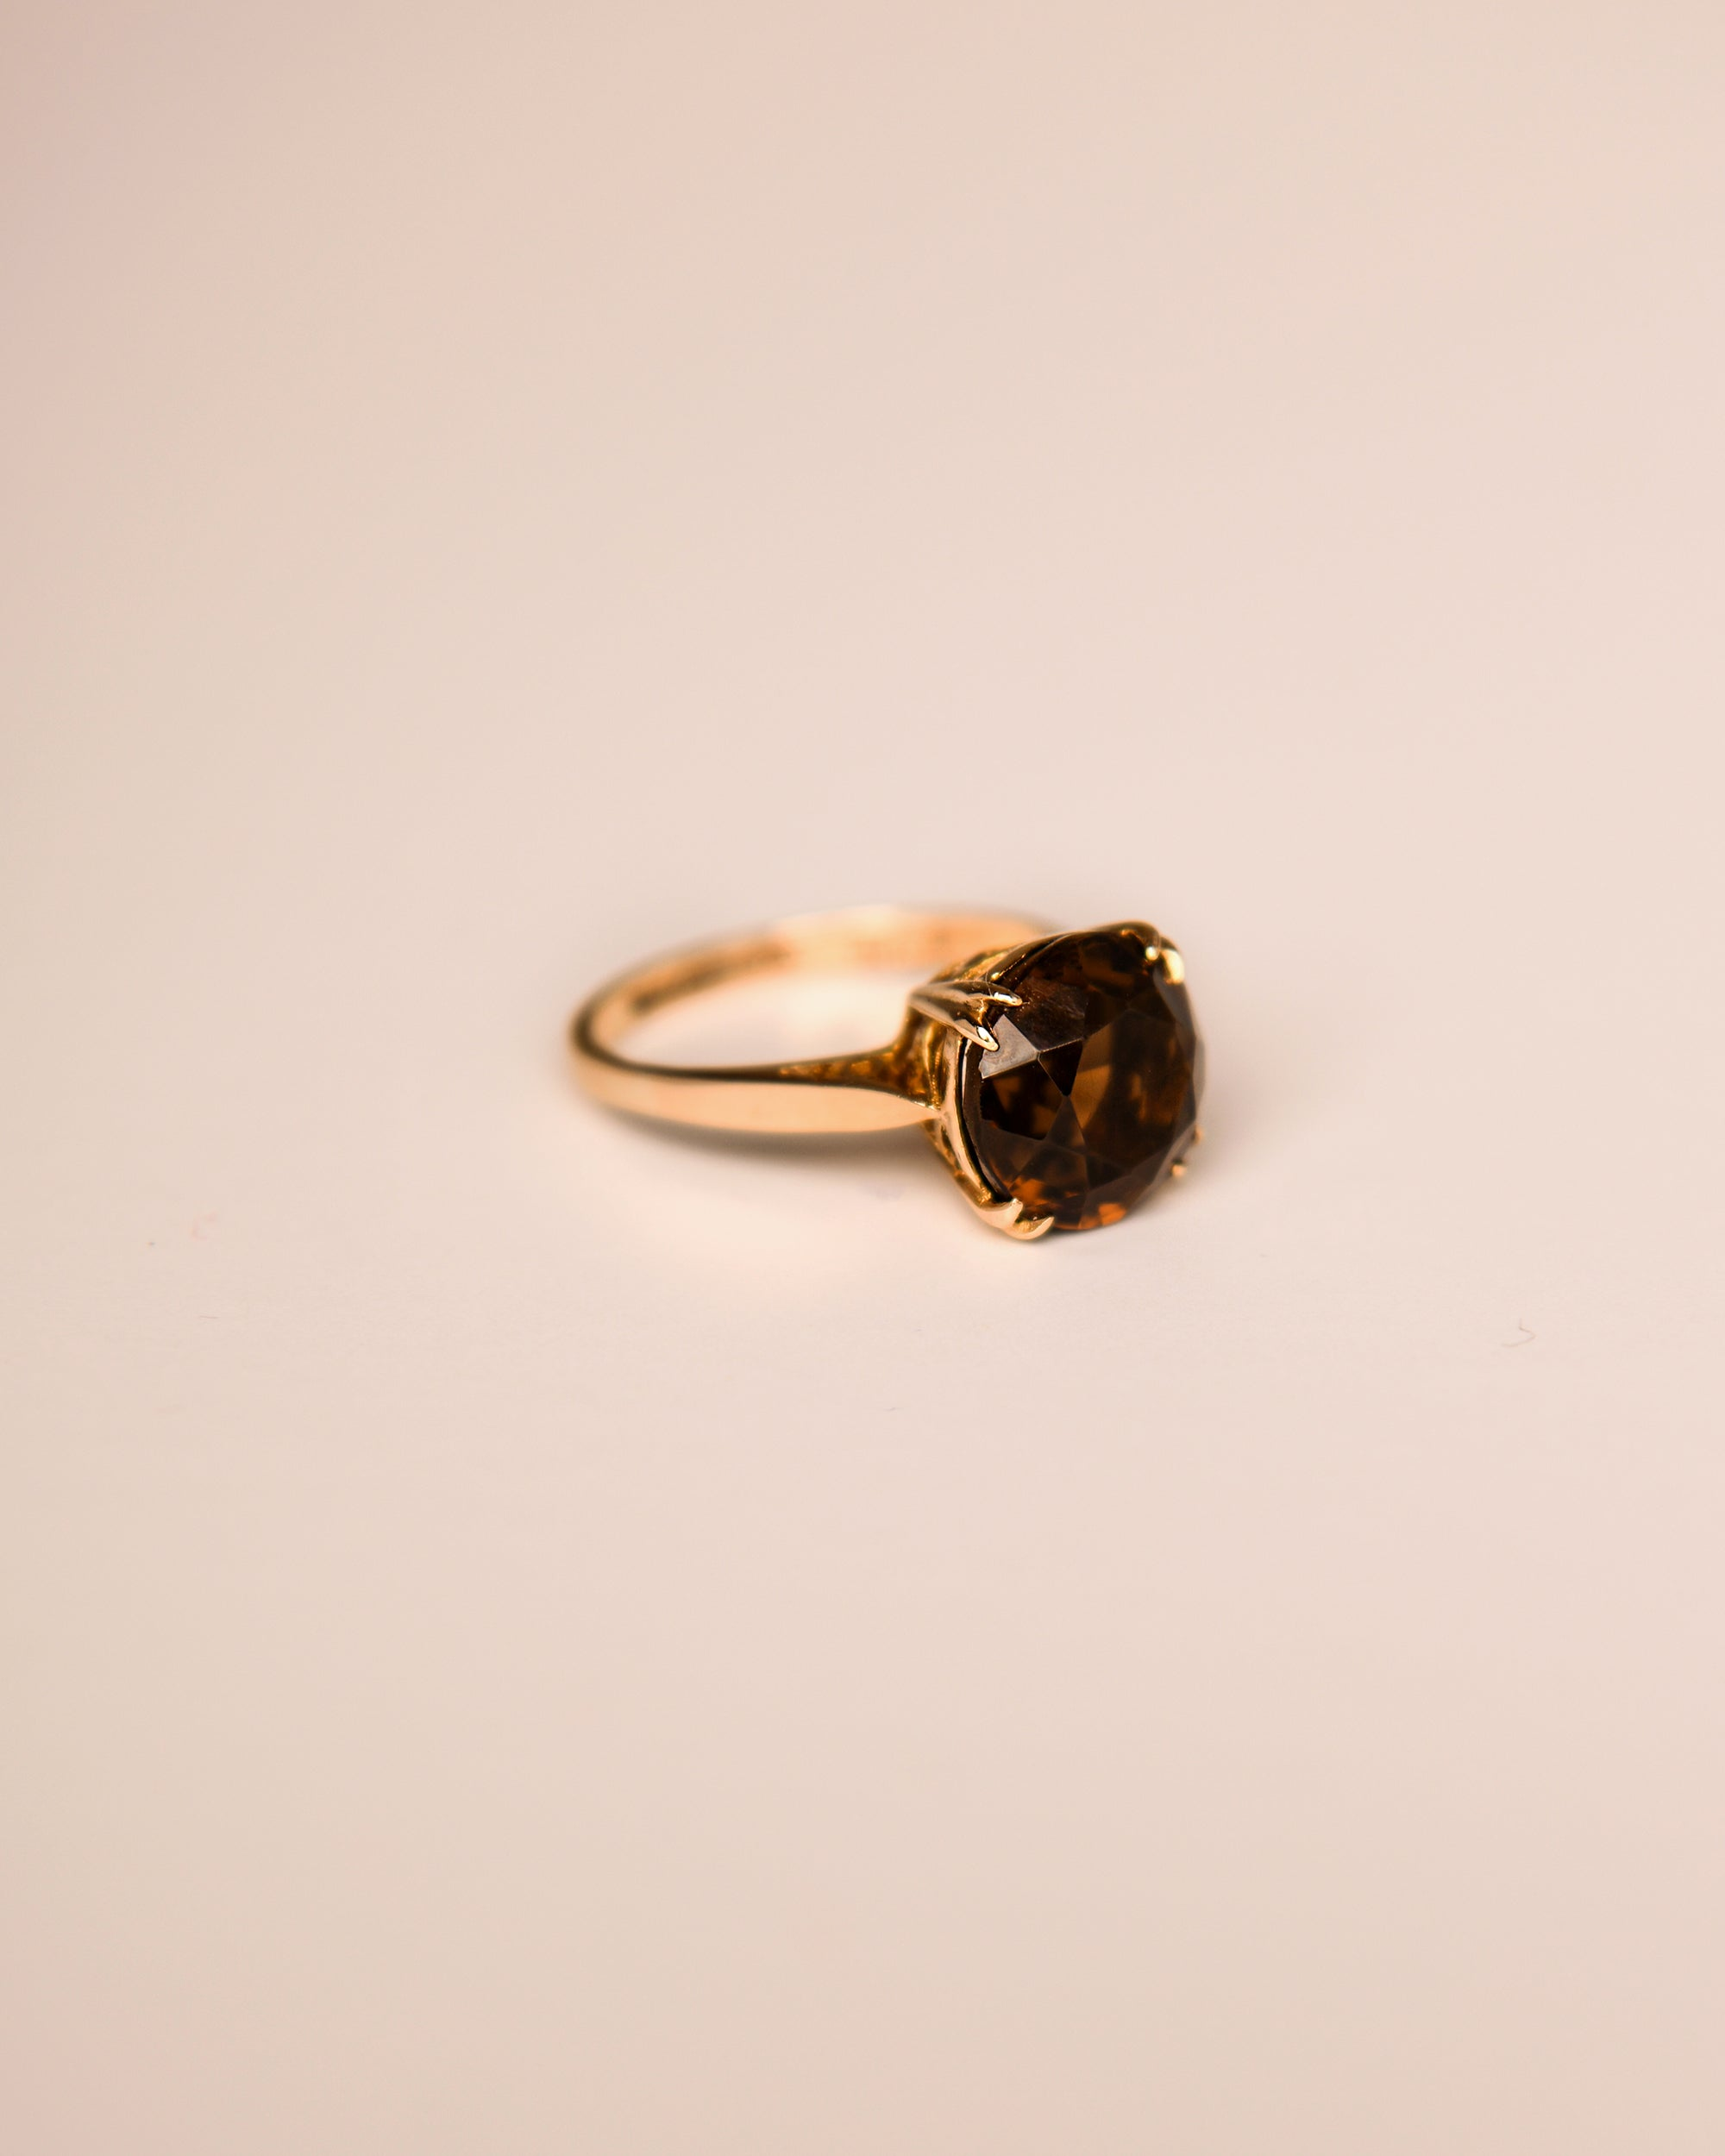 Monet 9ct Gold Vintage Smoky Quartz Ring